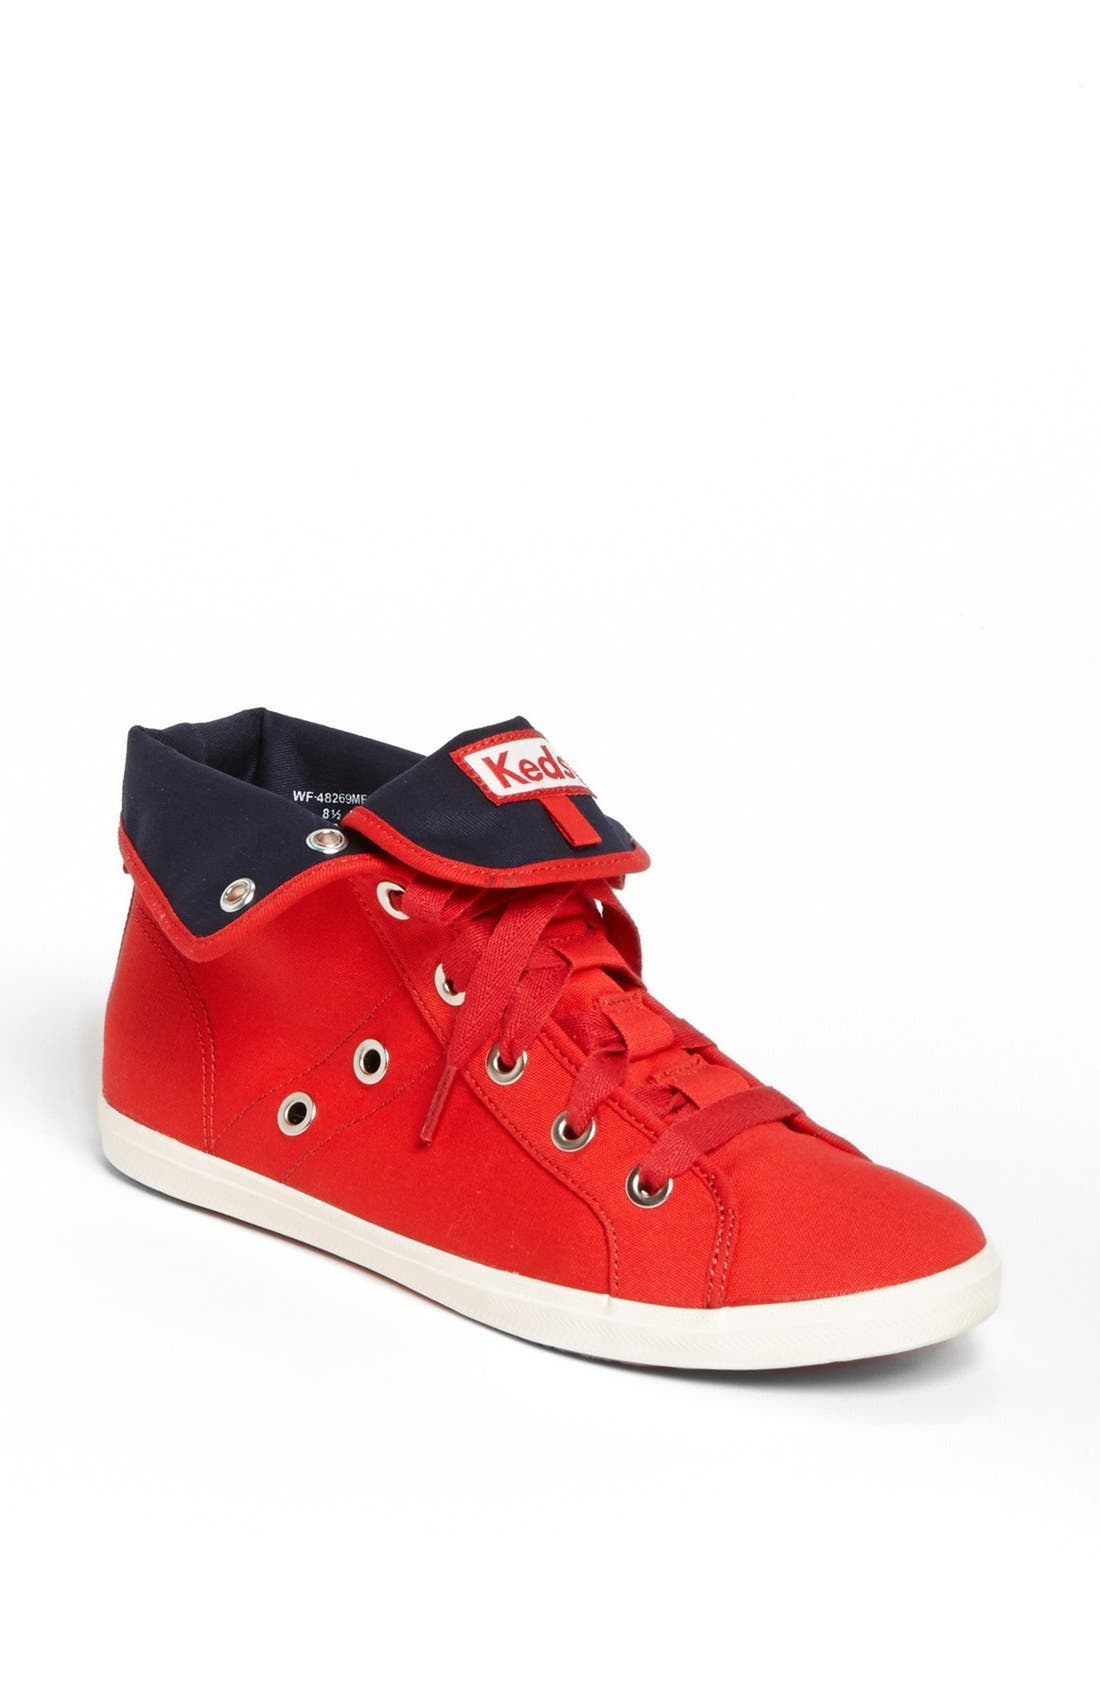 Main Image - Keds® 'Rookie - Loop-De-Loop' High Top Sneaker (Women)